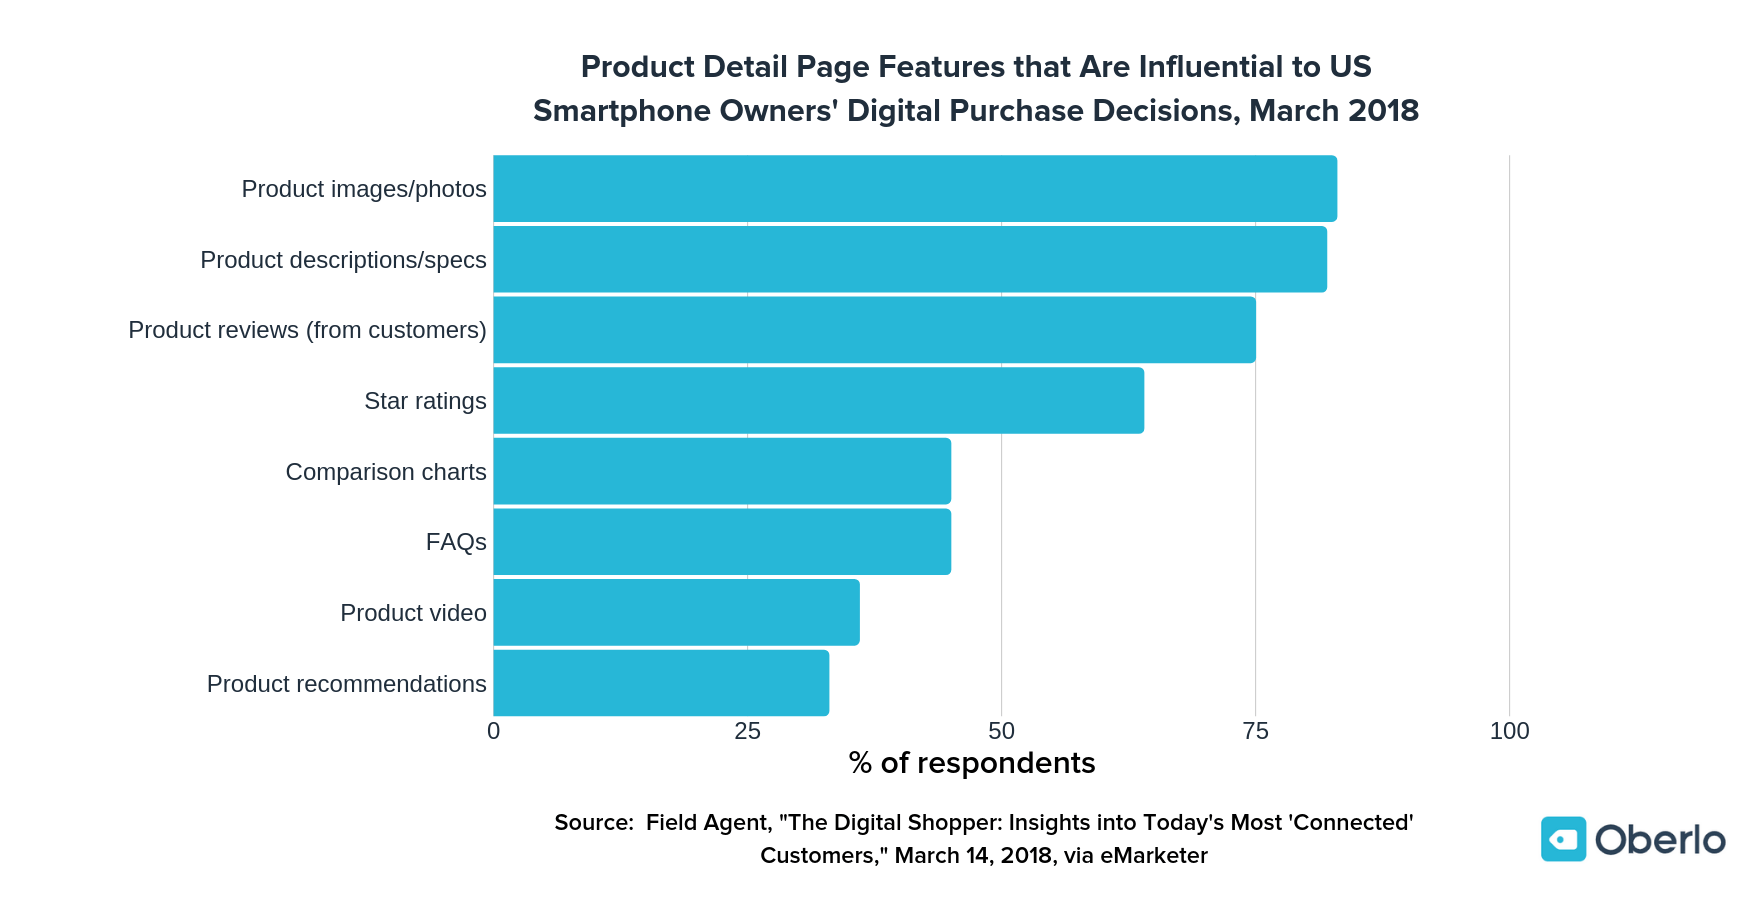 82% of people said that product descriptions influence their buying decisions.